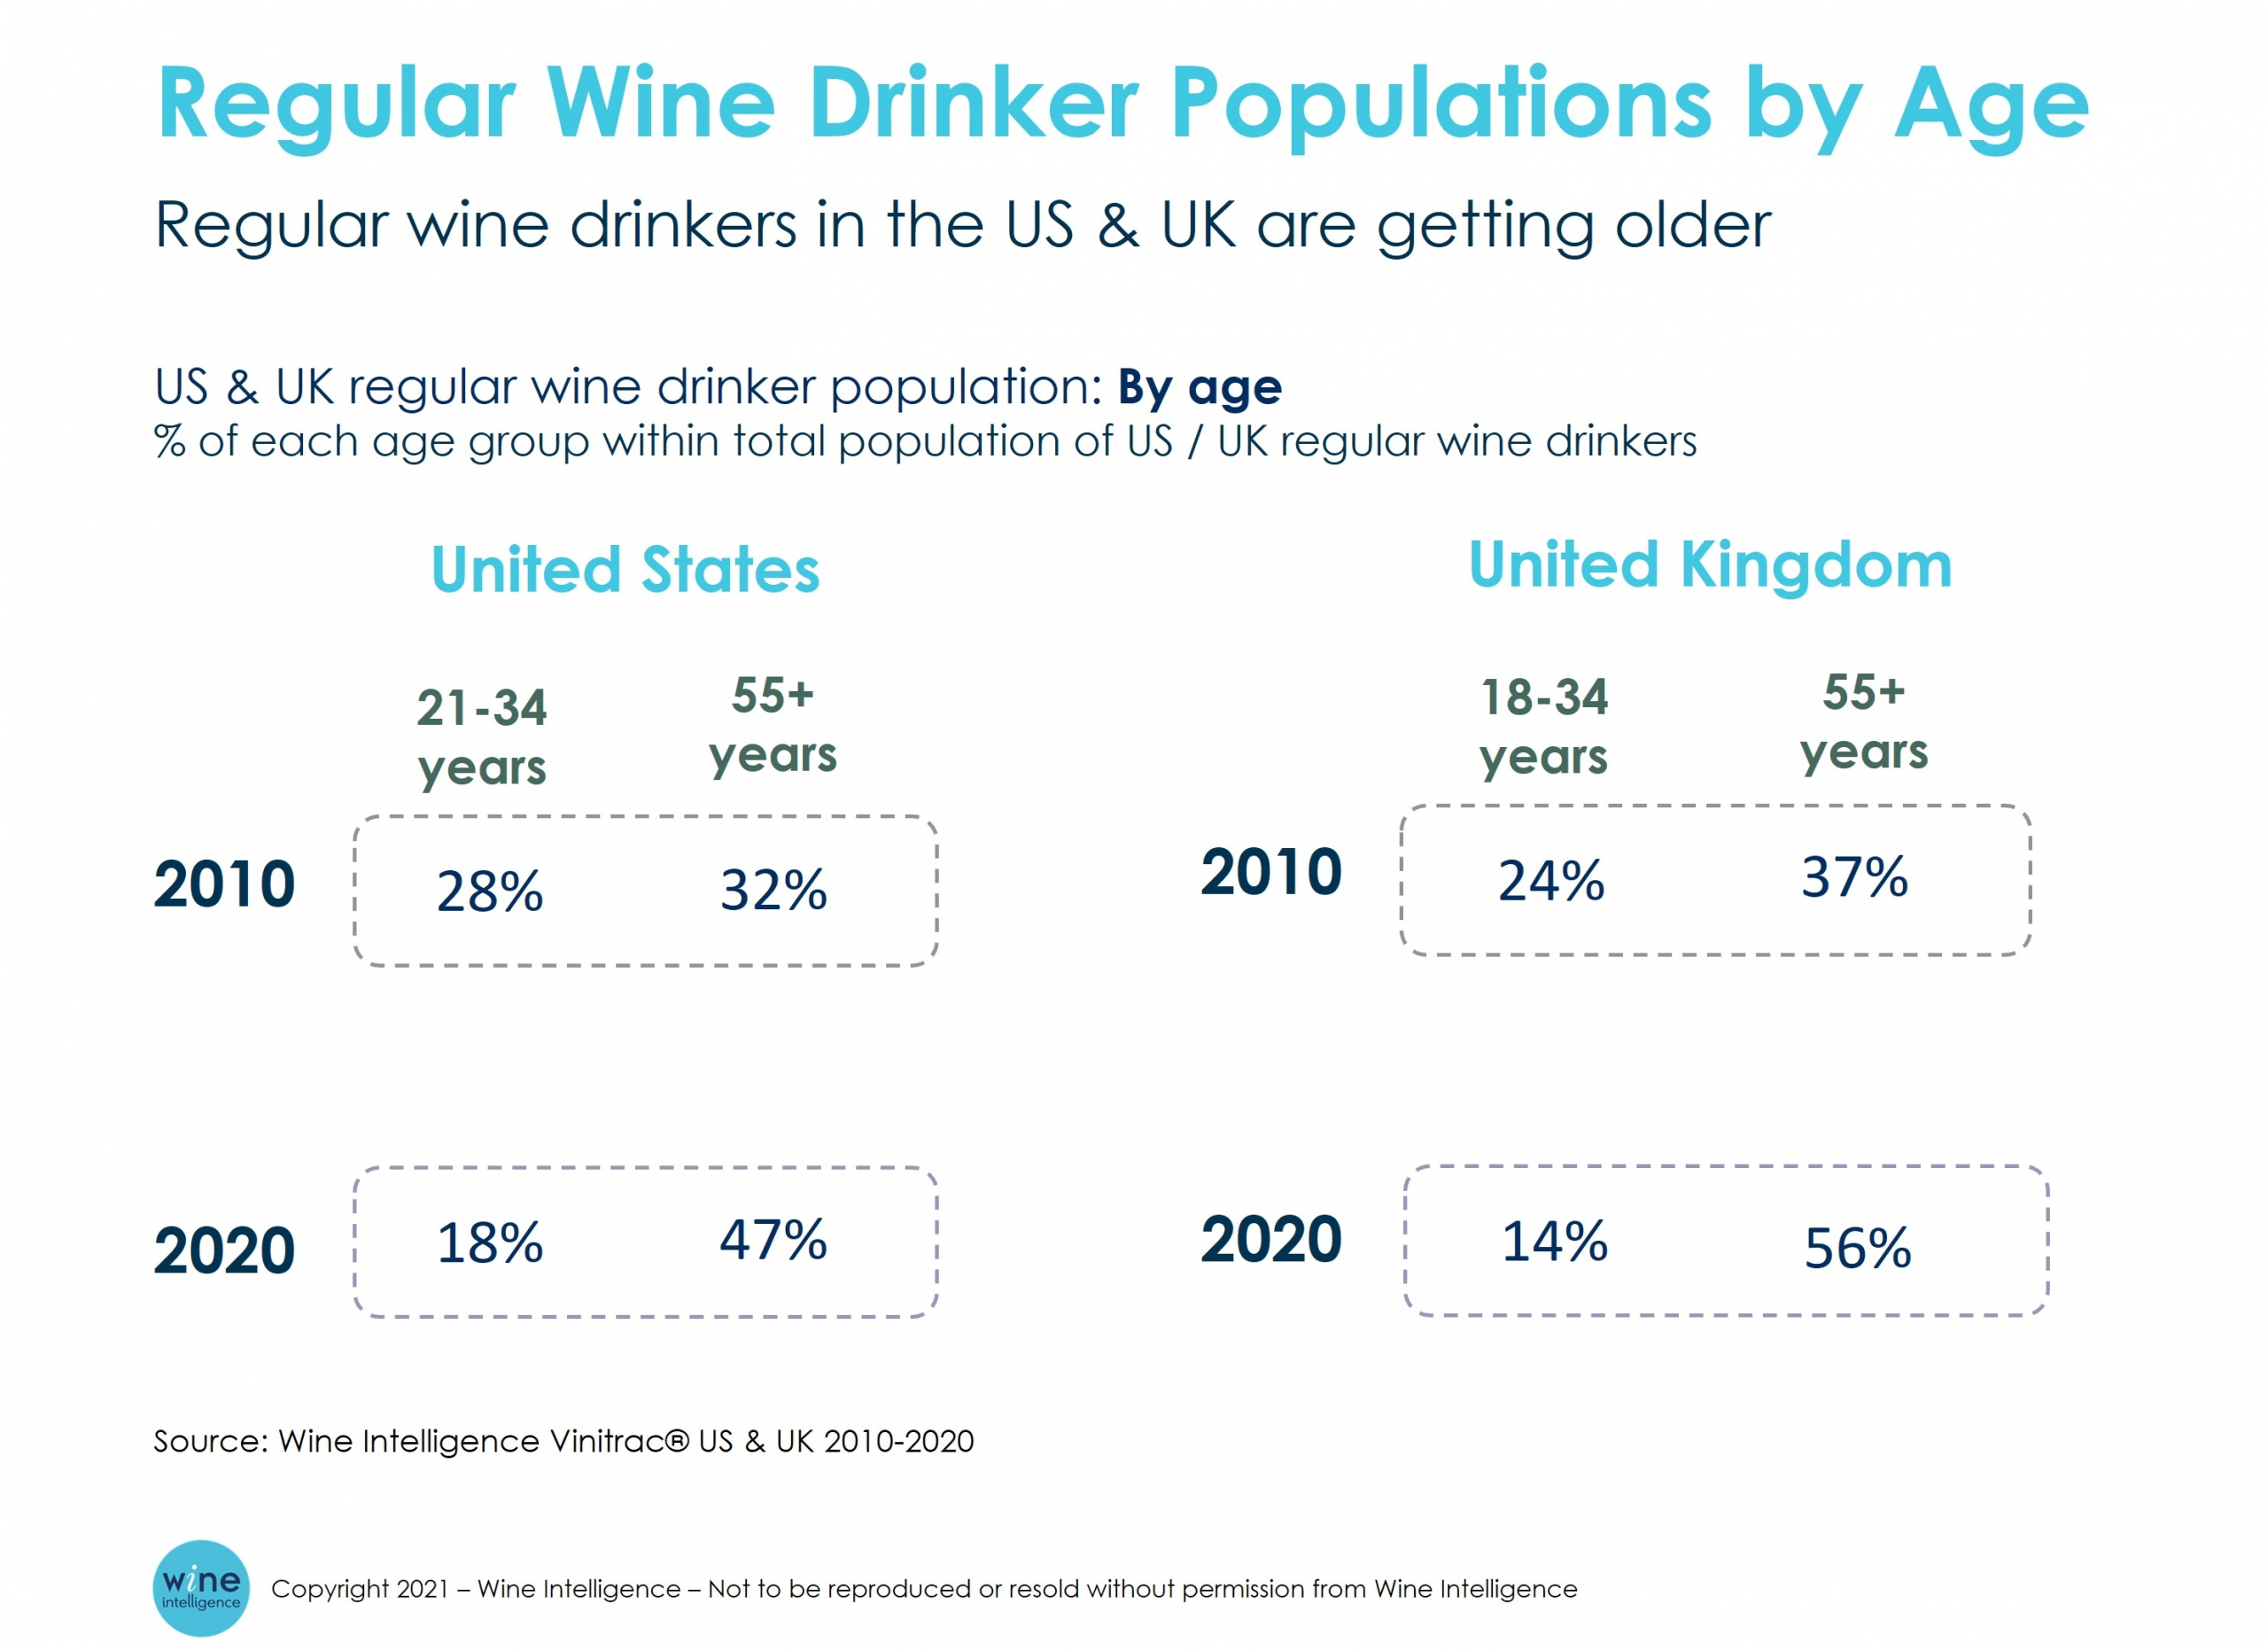 Regular wine drinking populations by age us and uk scaled - Is wine losing its hold on younger adults?